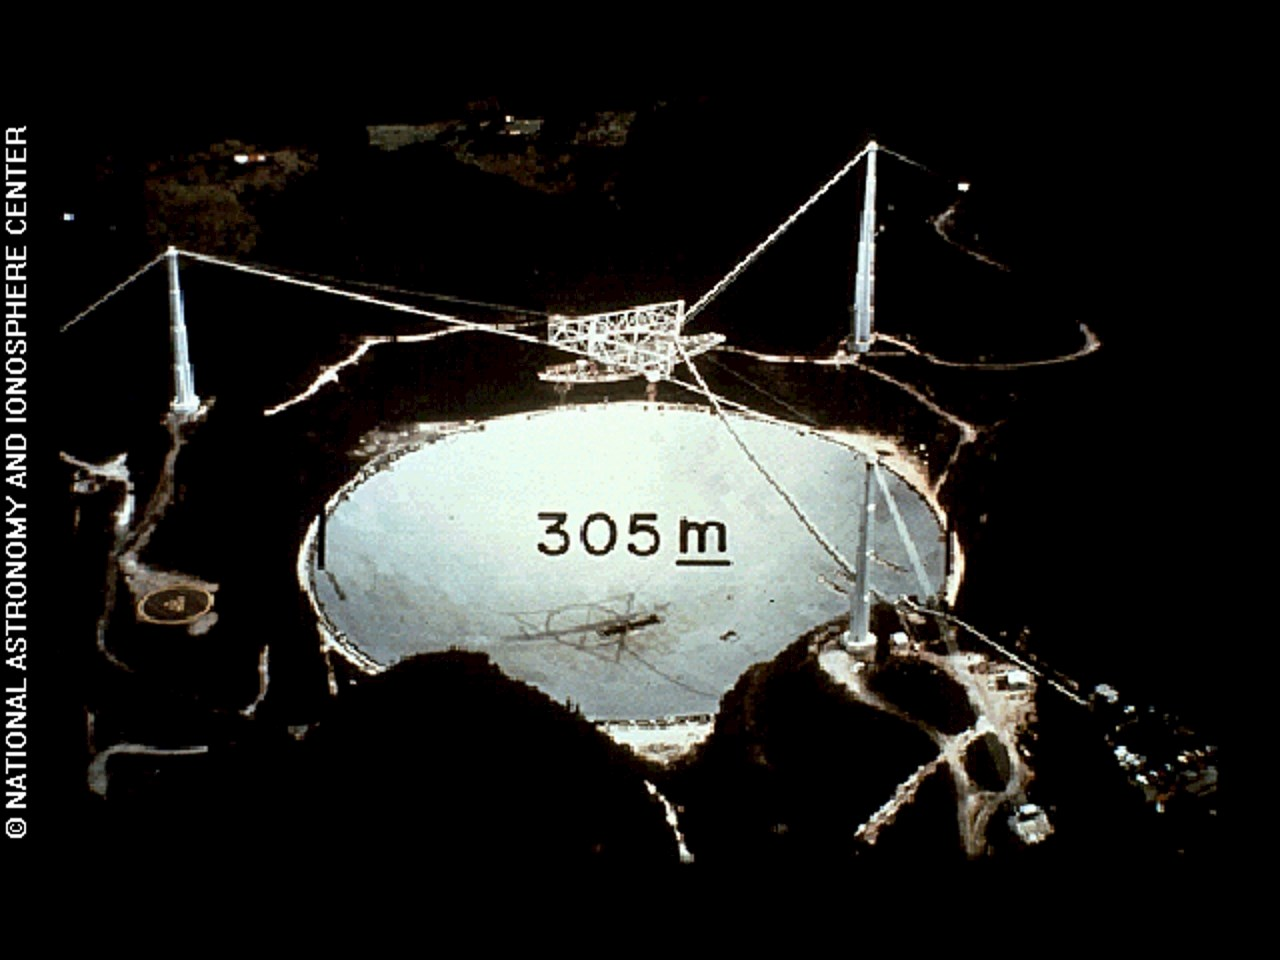 This is a photograph of the Arecibo observatory marked with an indication of scale